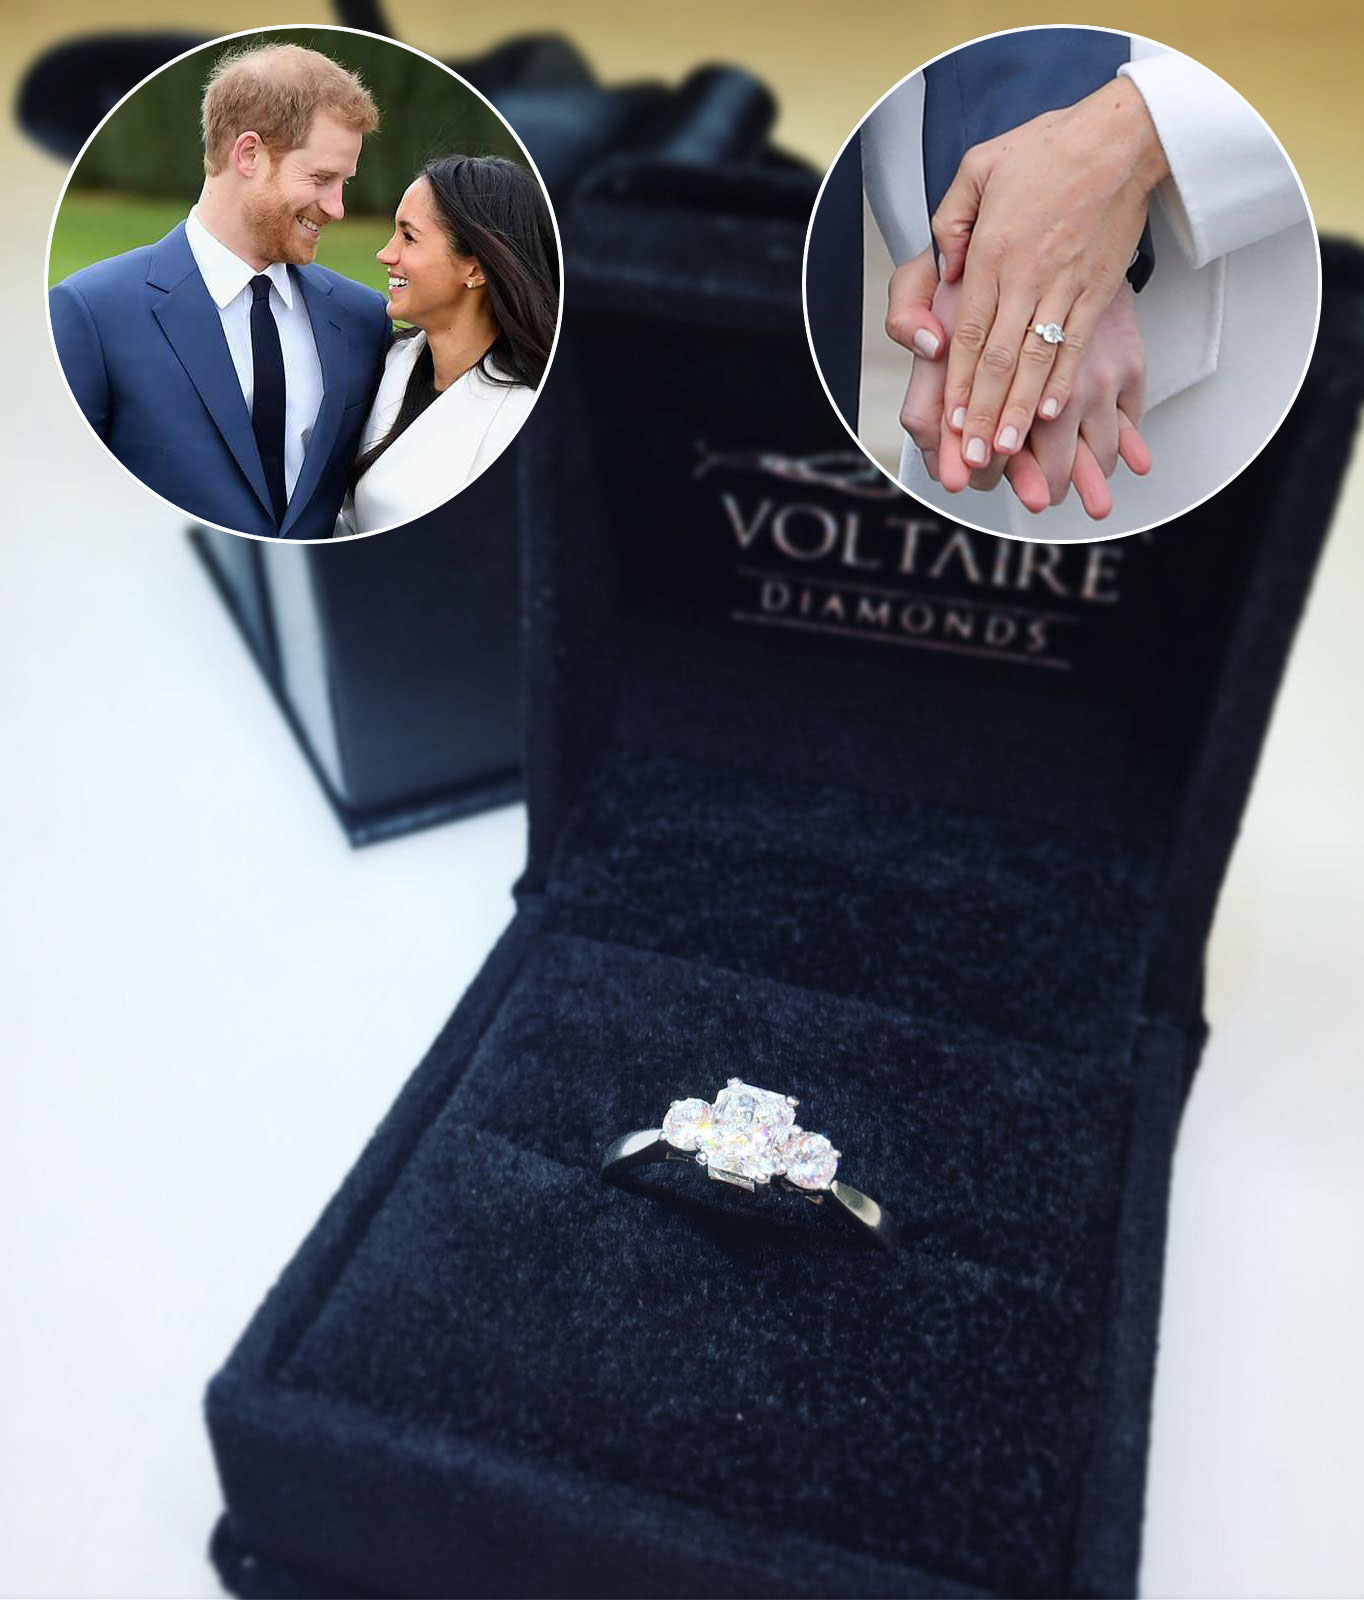 Prince Harry Proposes To Meghan Markle With Stunning